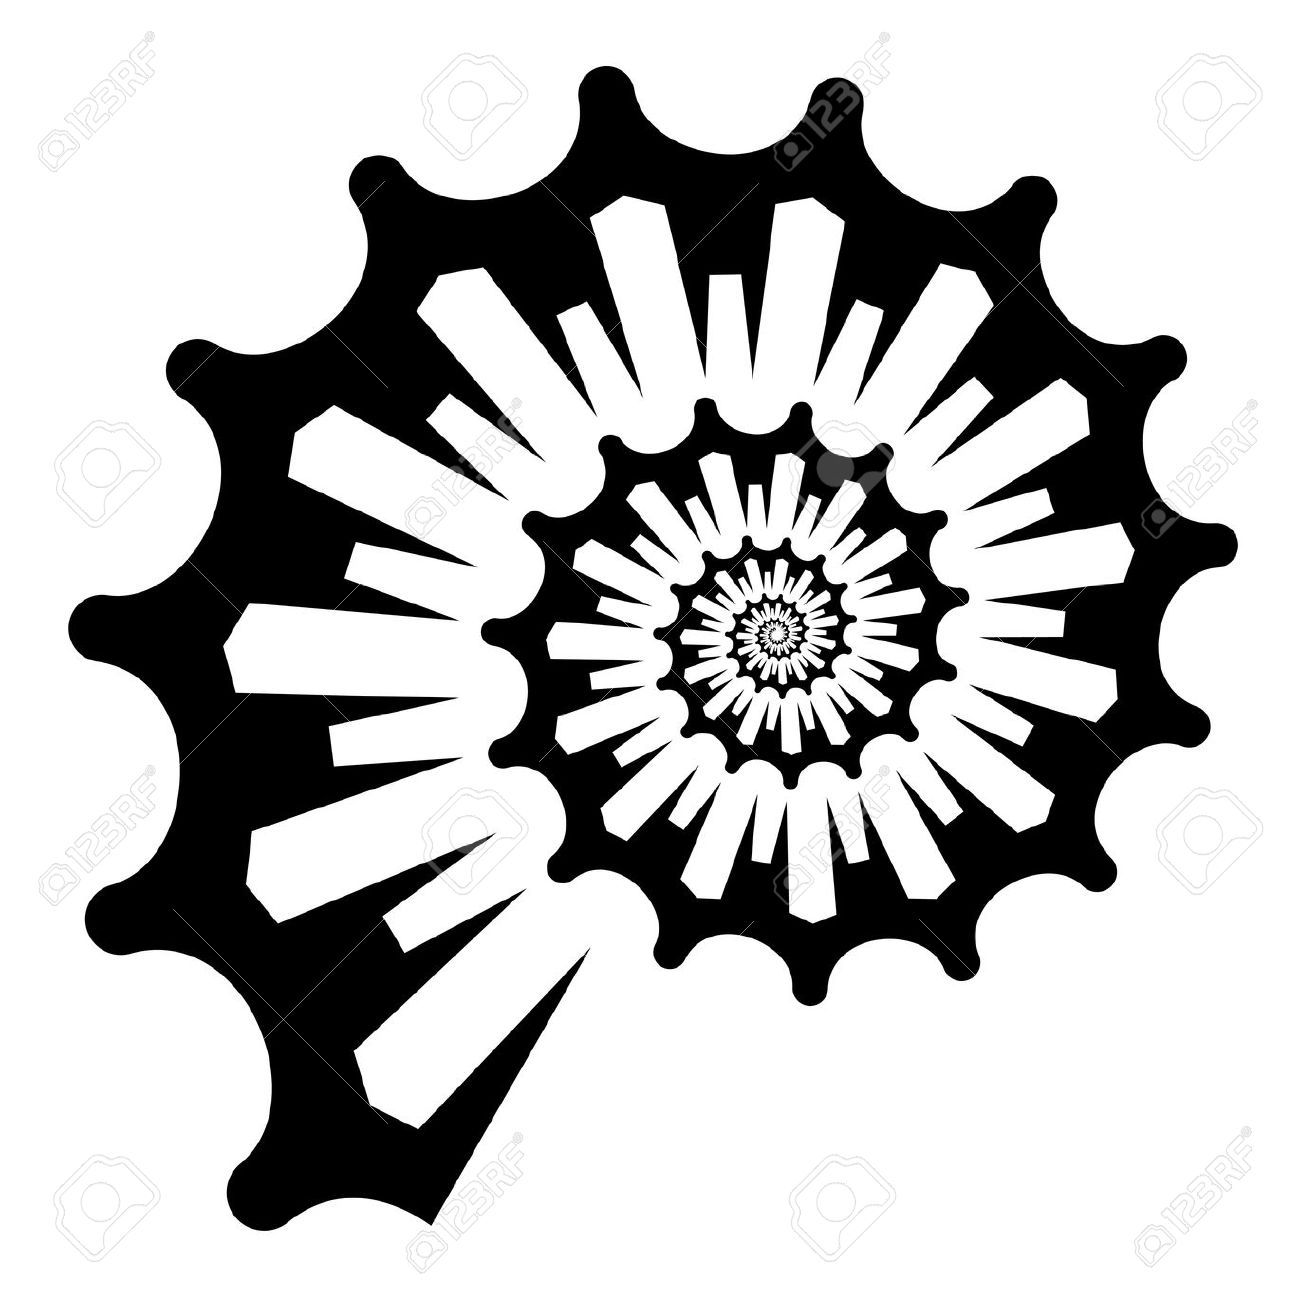 clip art freeuse stock Fractal Graphics Stock Photos Images